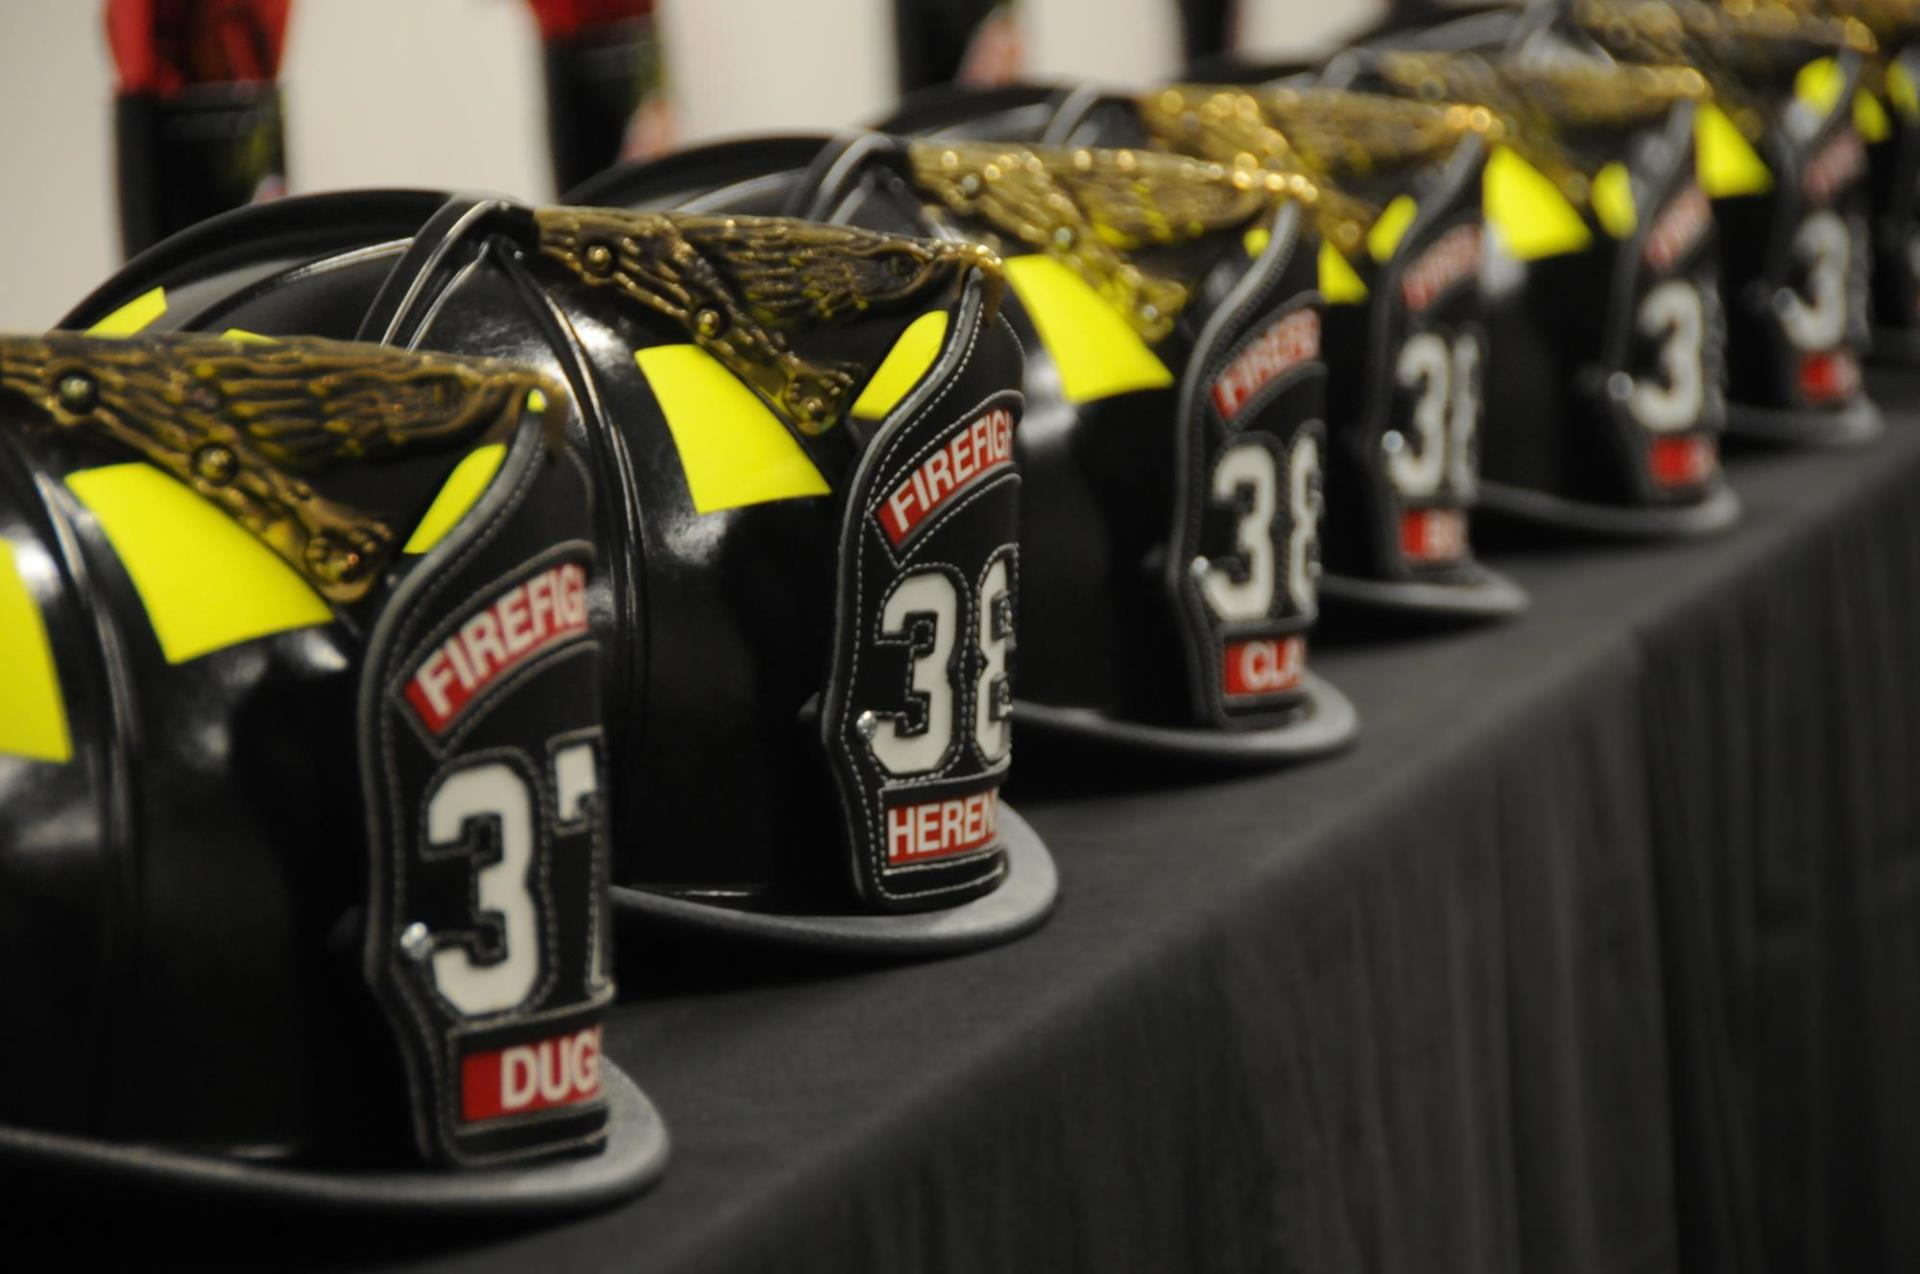 Helmets lined up